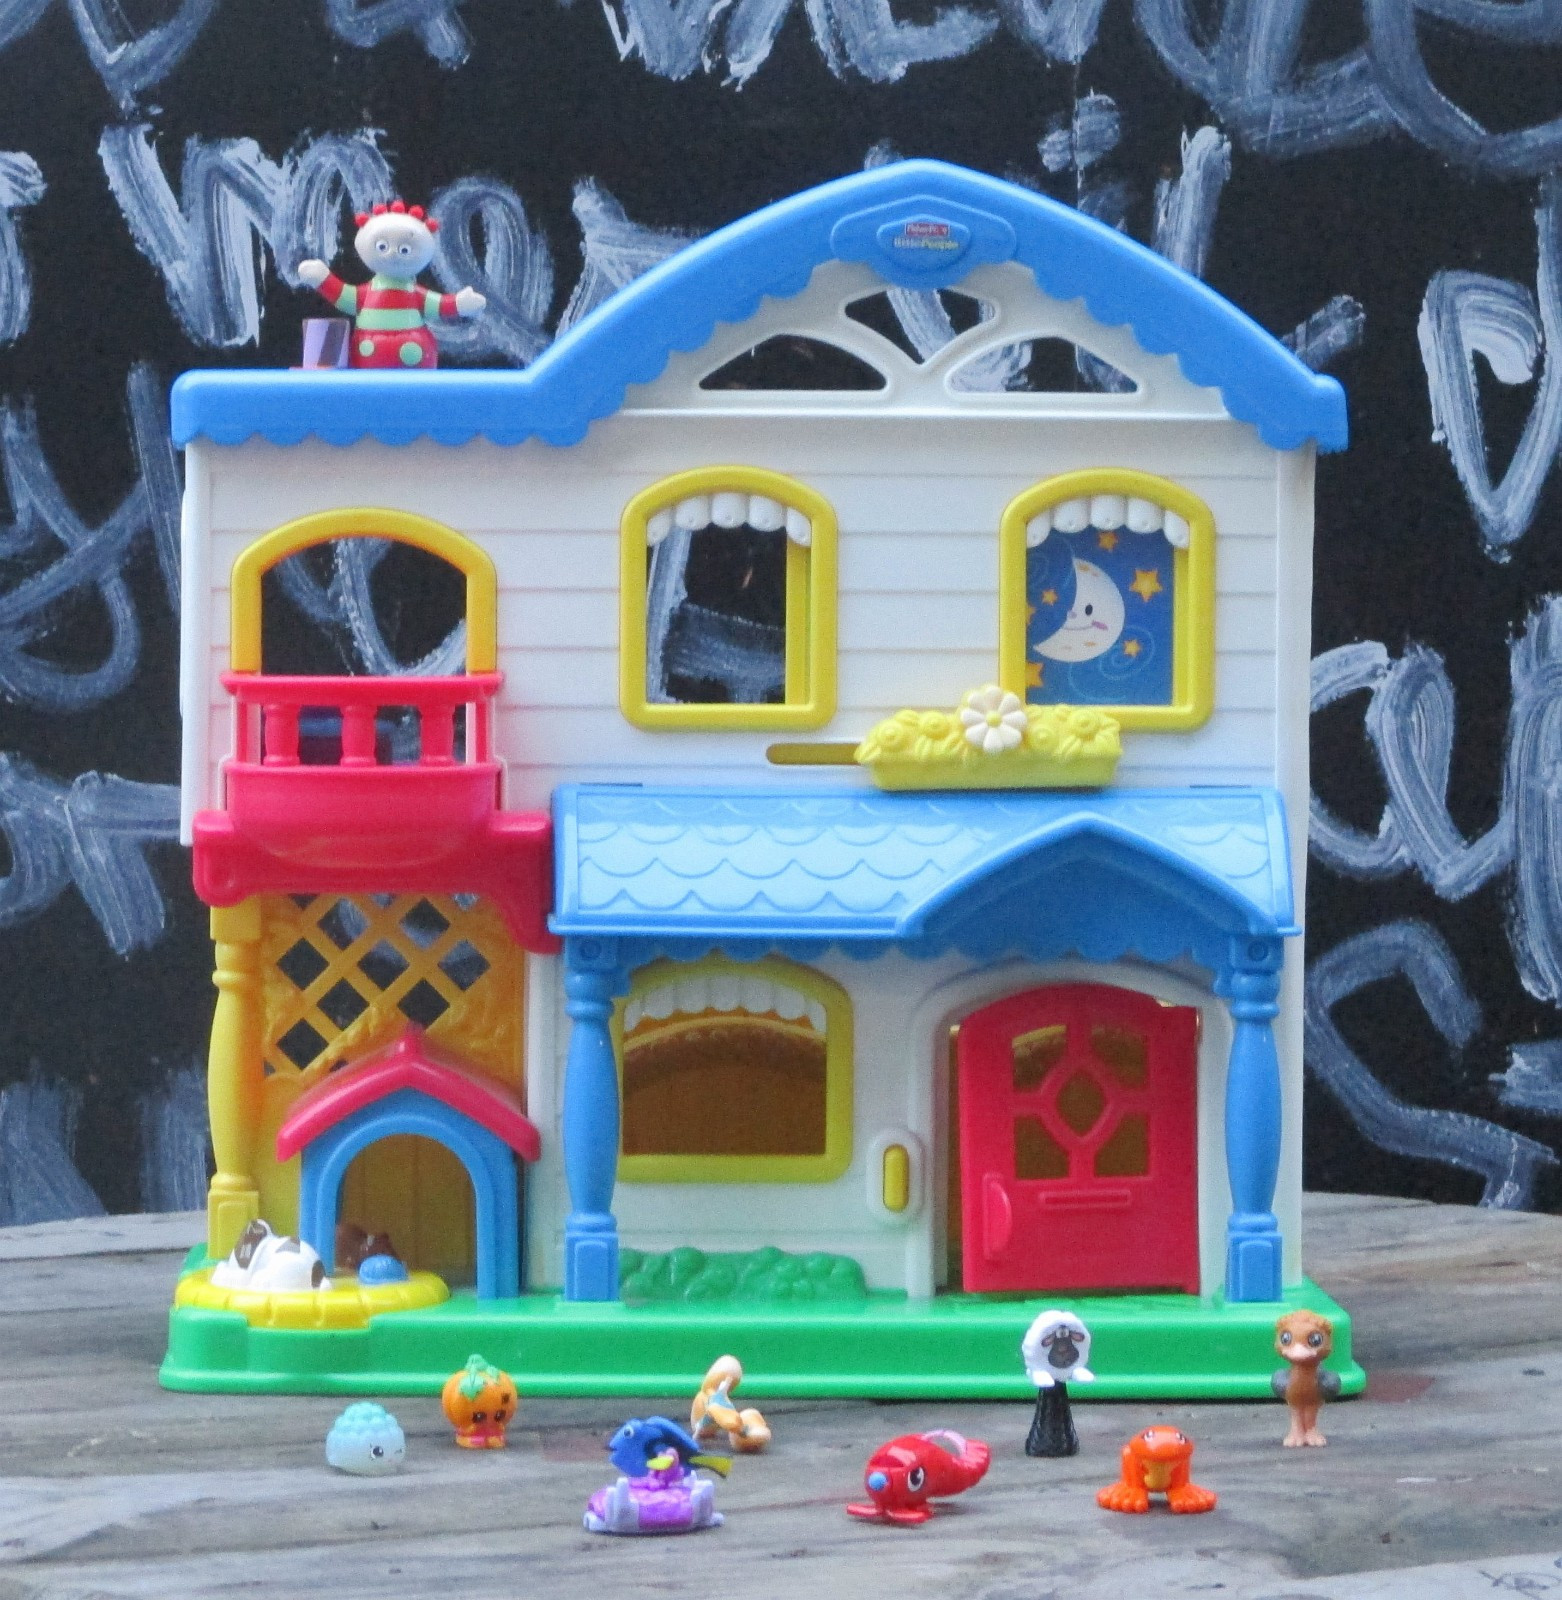 52d67ef3 Pedagogisk Fisher Price Little People Busy Day Doll House made in 2006 -  Dukkehus collectors item (1/10)